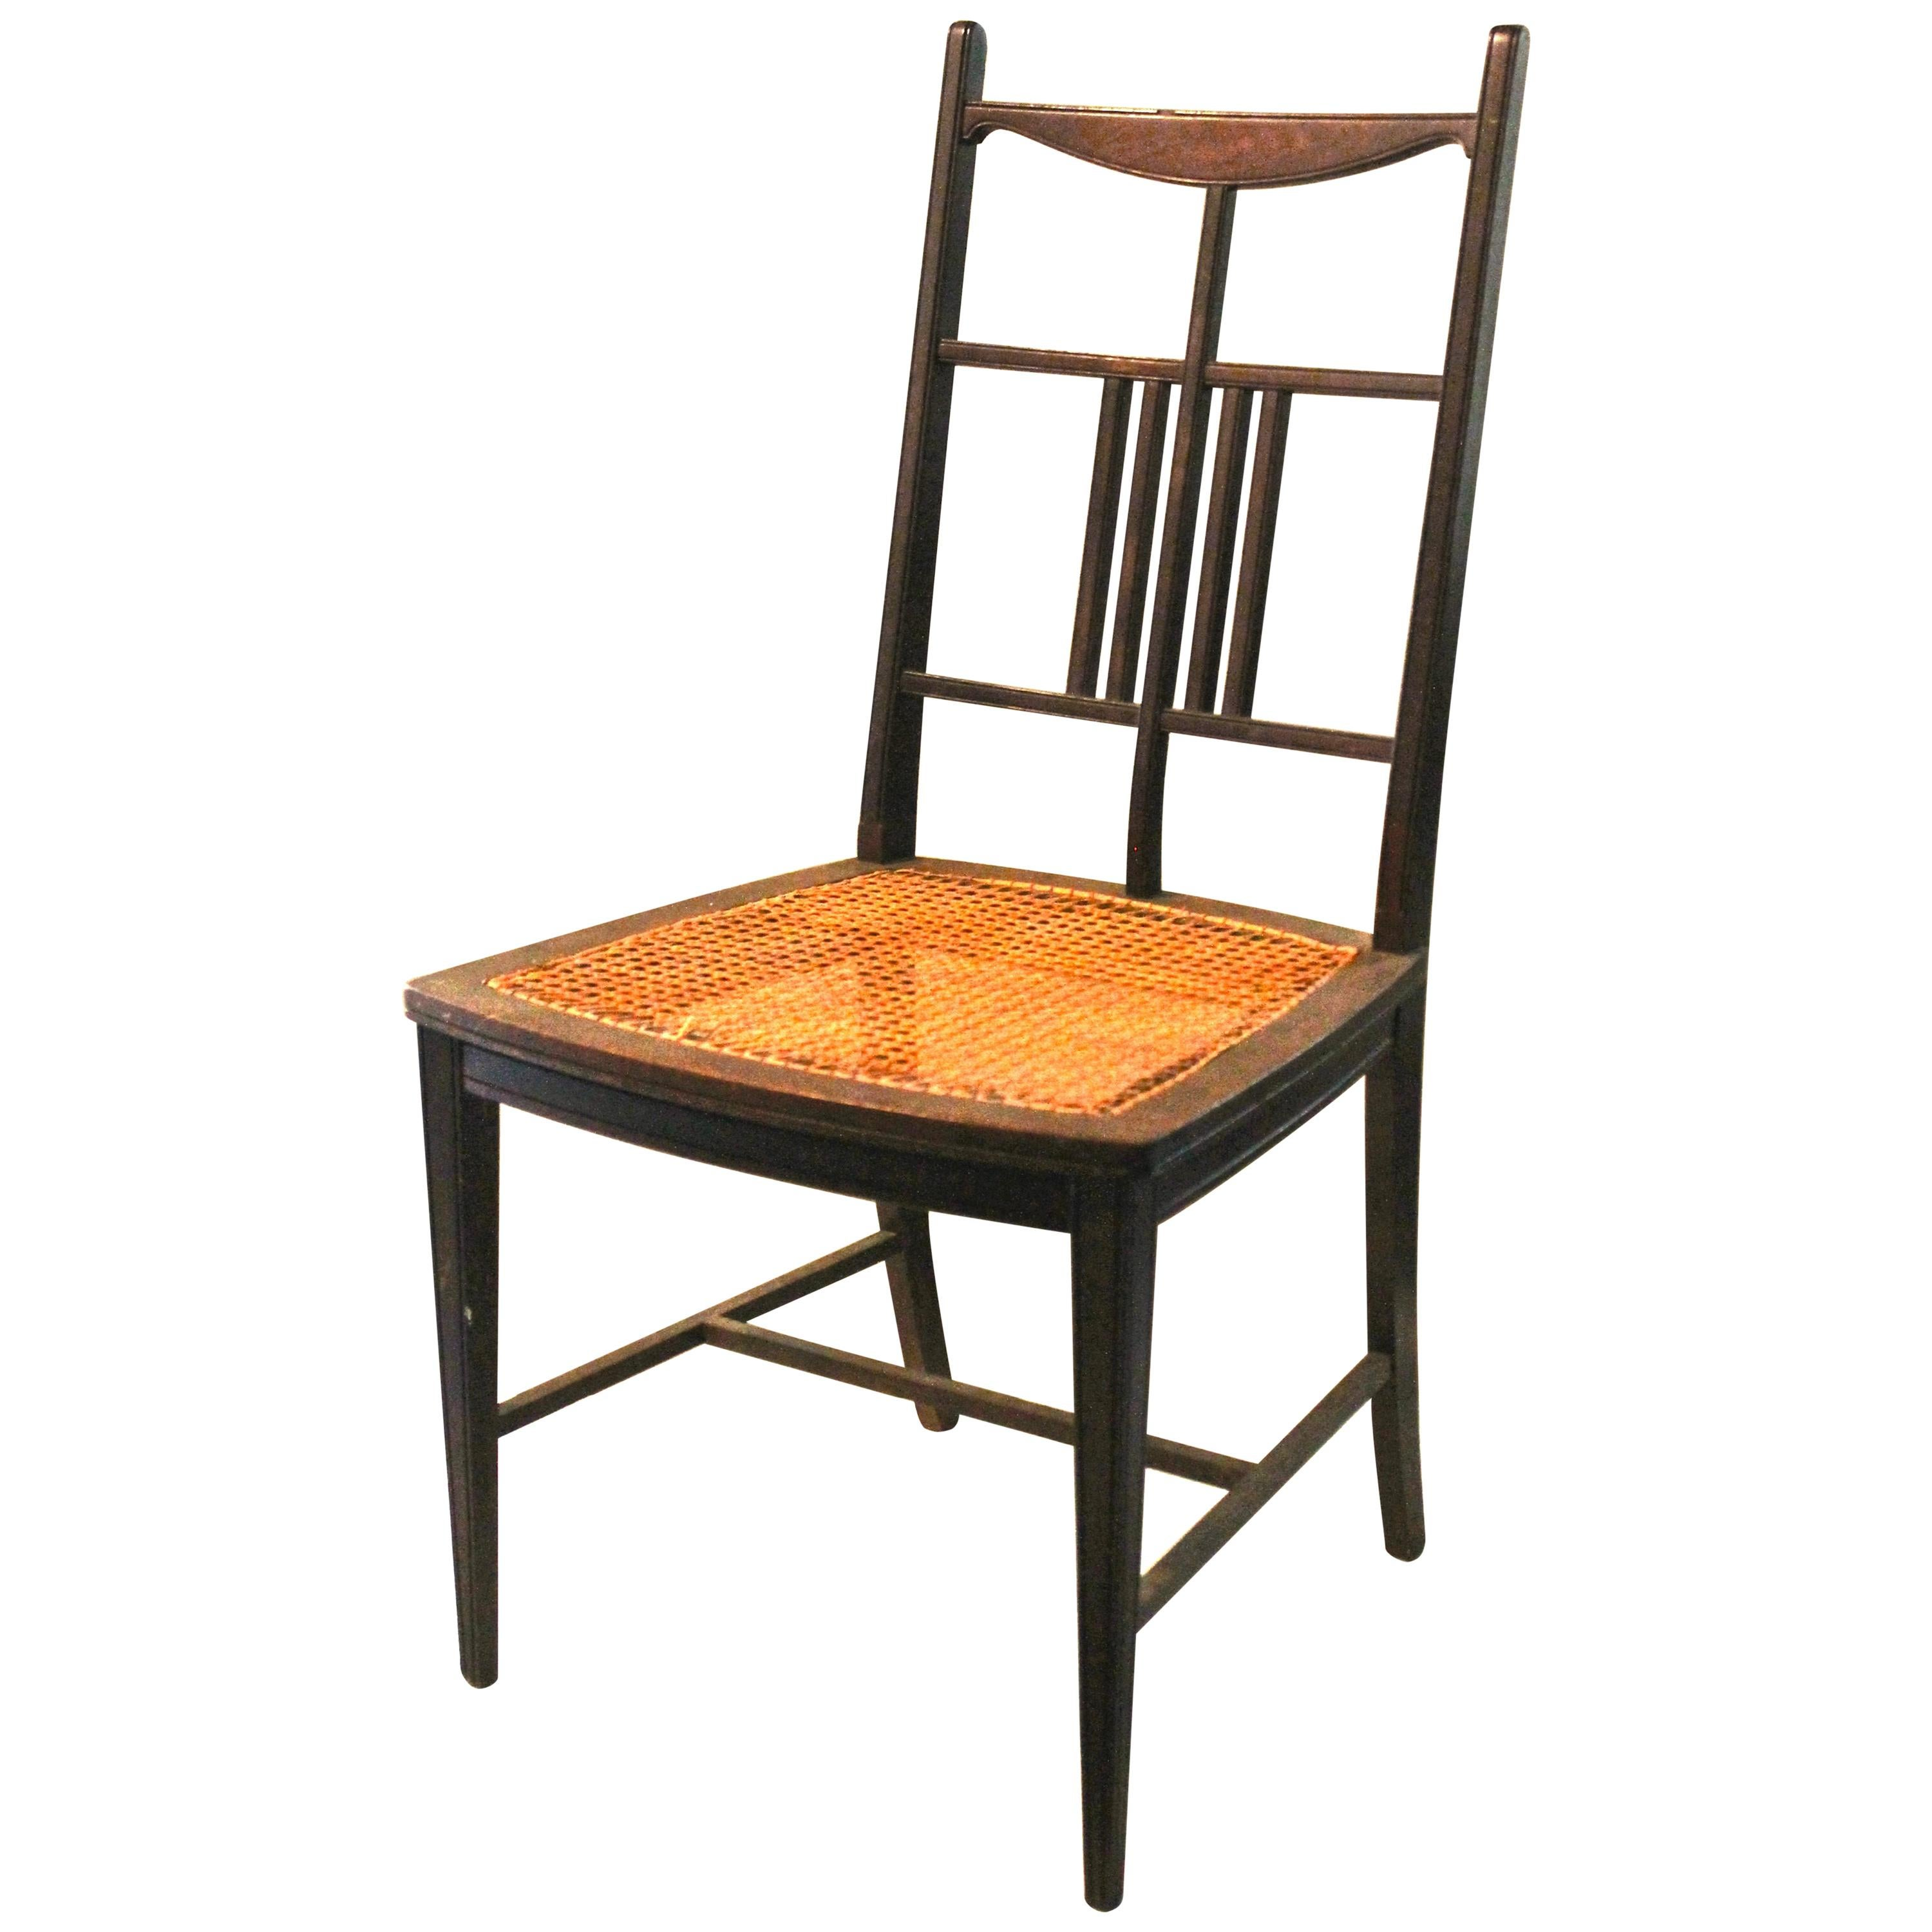 E.W. Godwin Attributed Anglo-Japanese Aesthetic Movement Side Chair